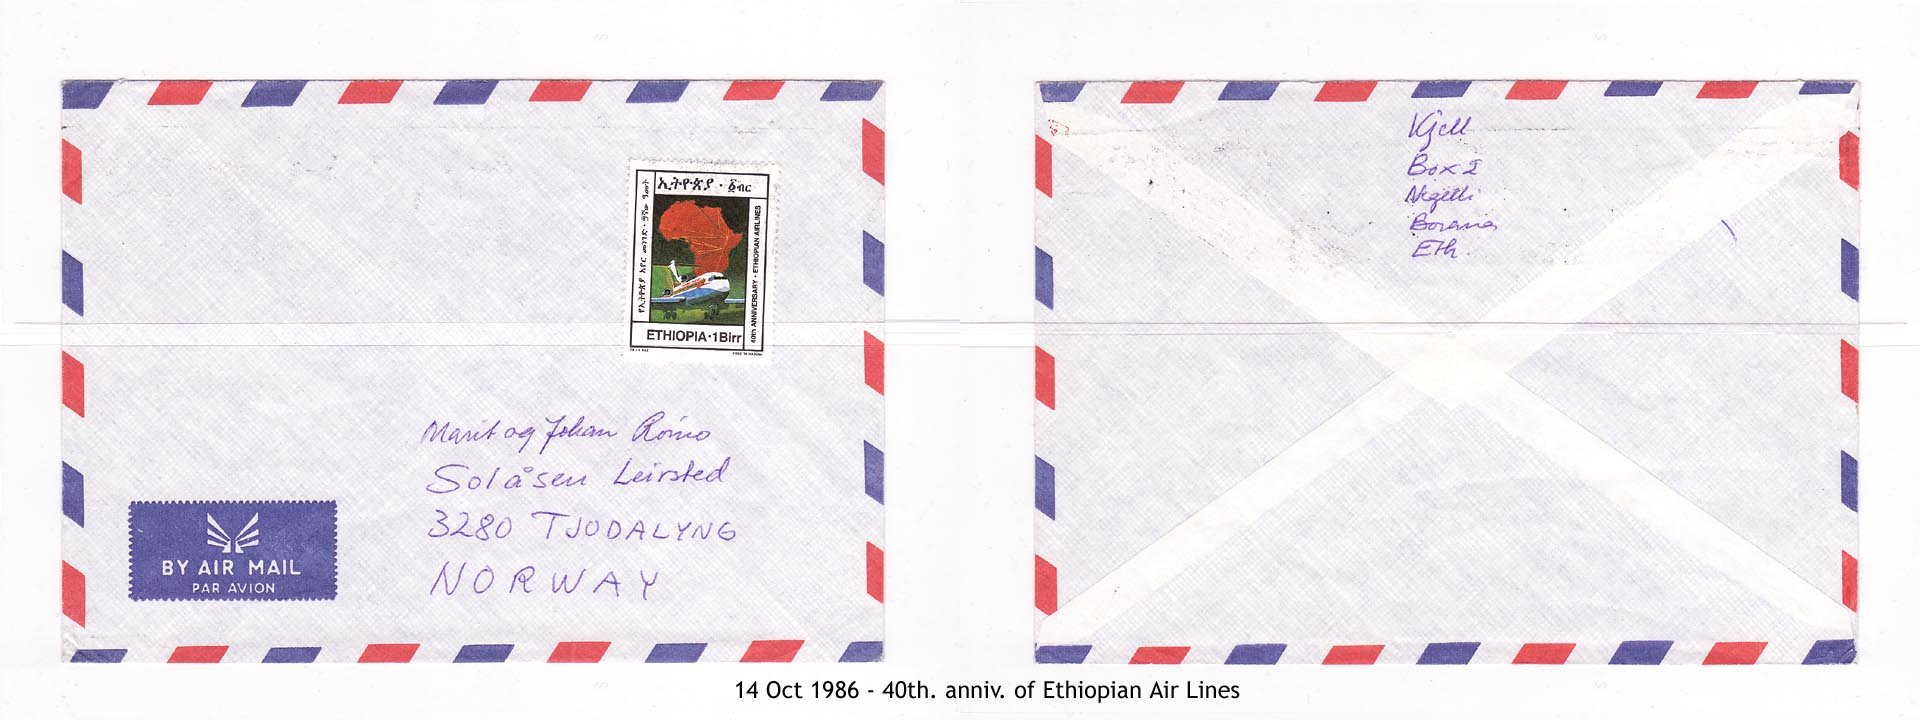 19861014 - 40th. anniv. of Ethiopian Air Lines